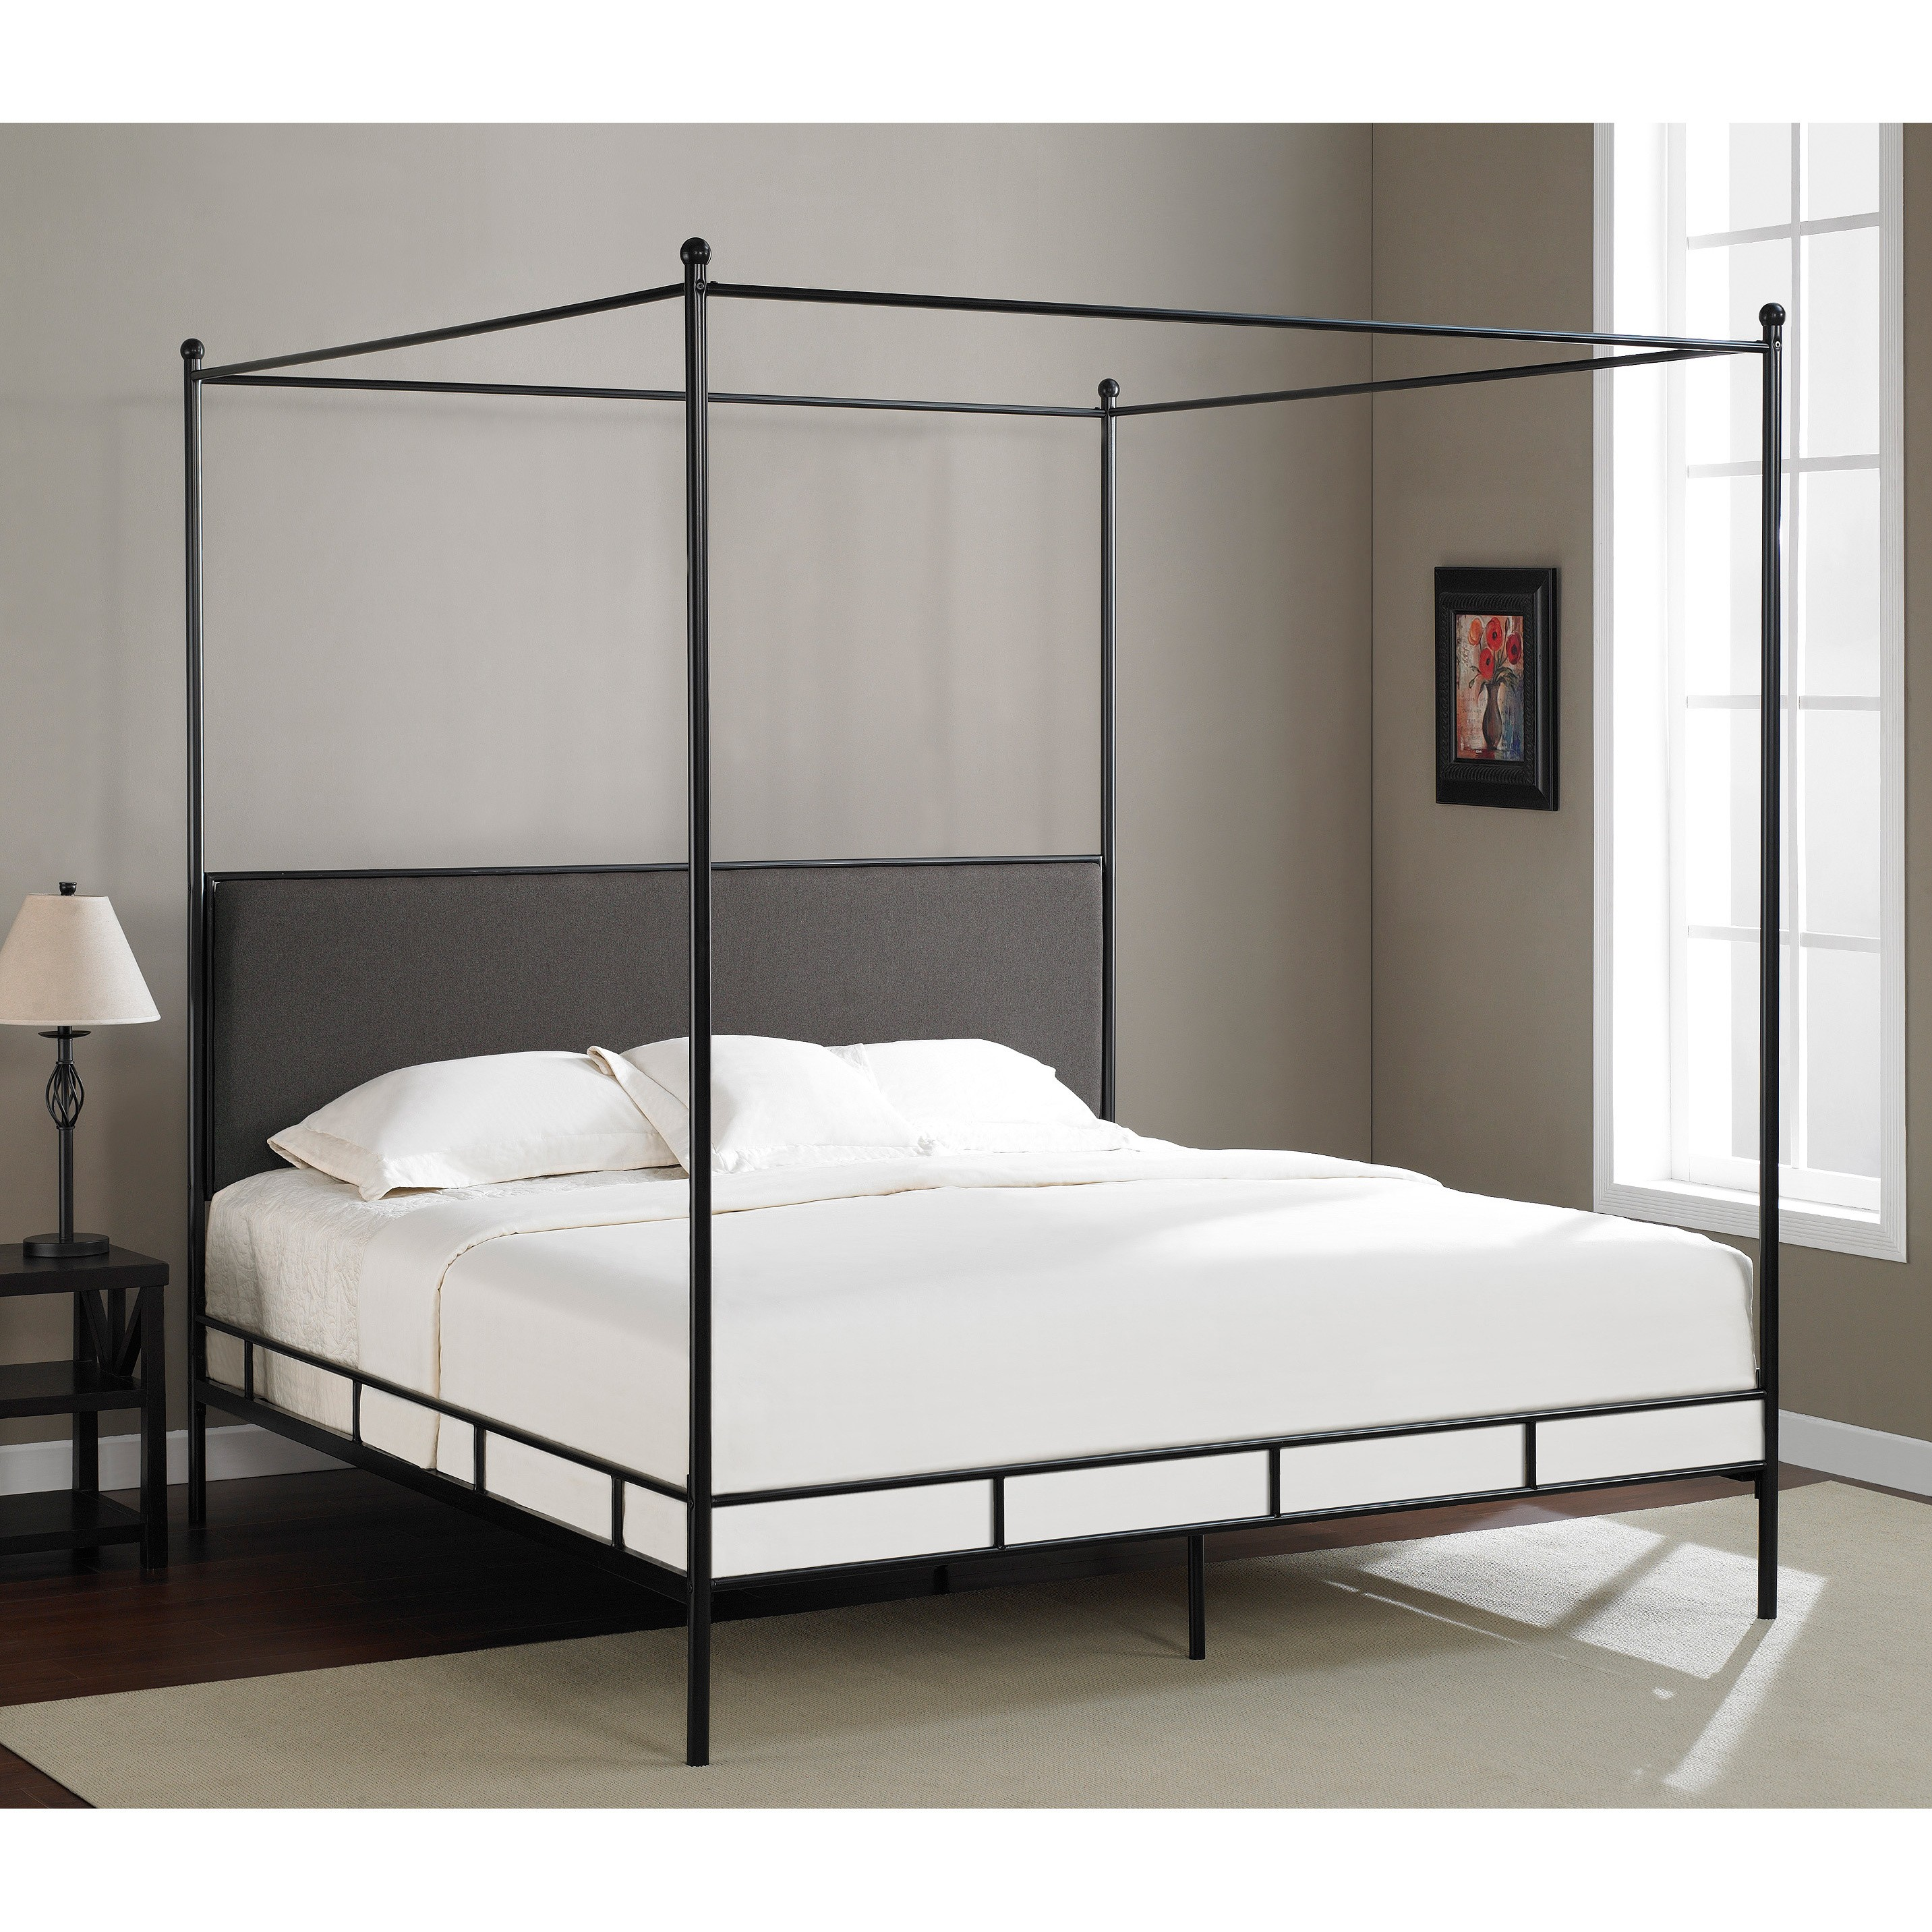 Extraordinary king canopy bed for classic bedroom ideas with king size canopy bed